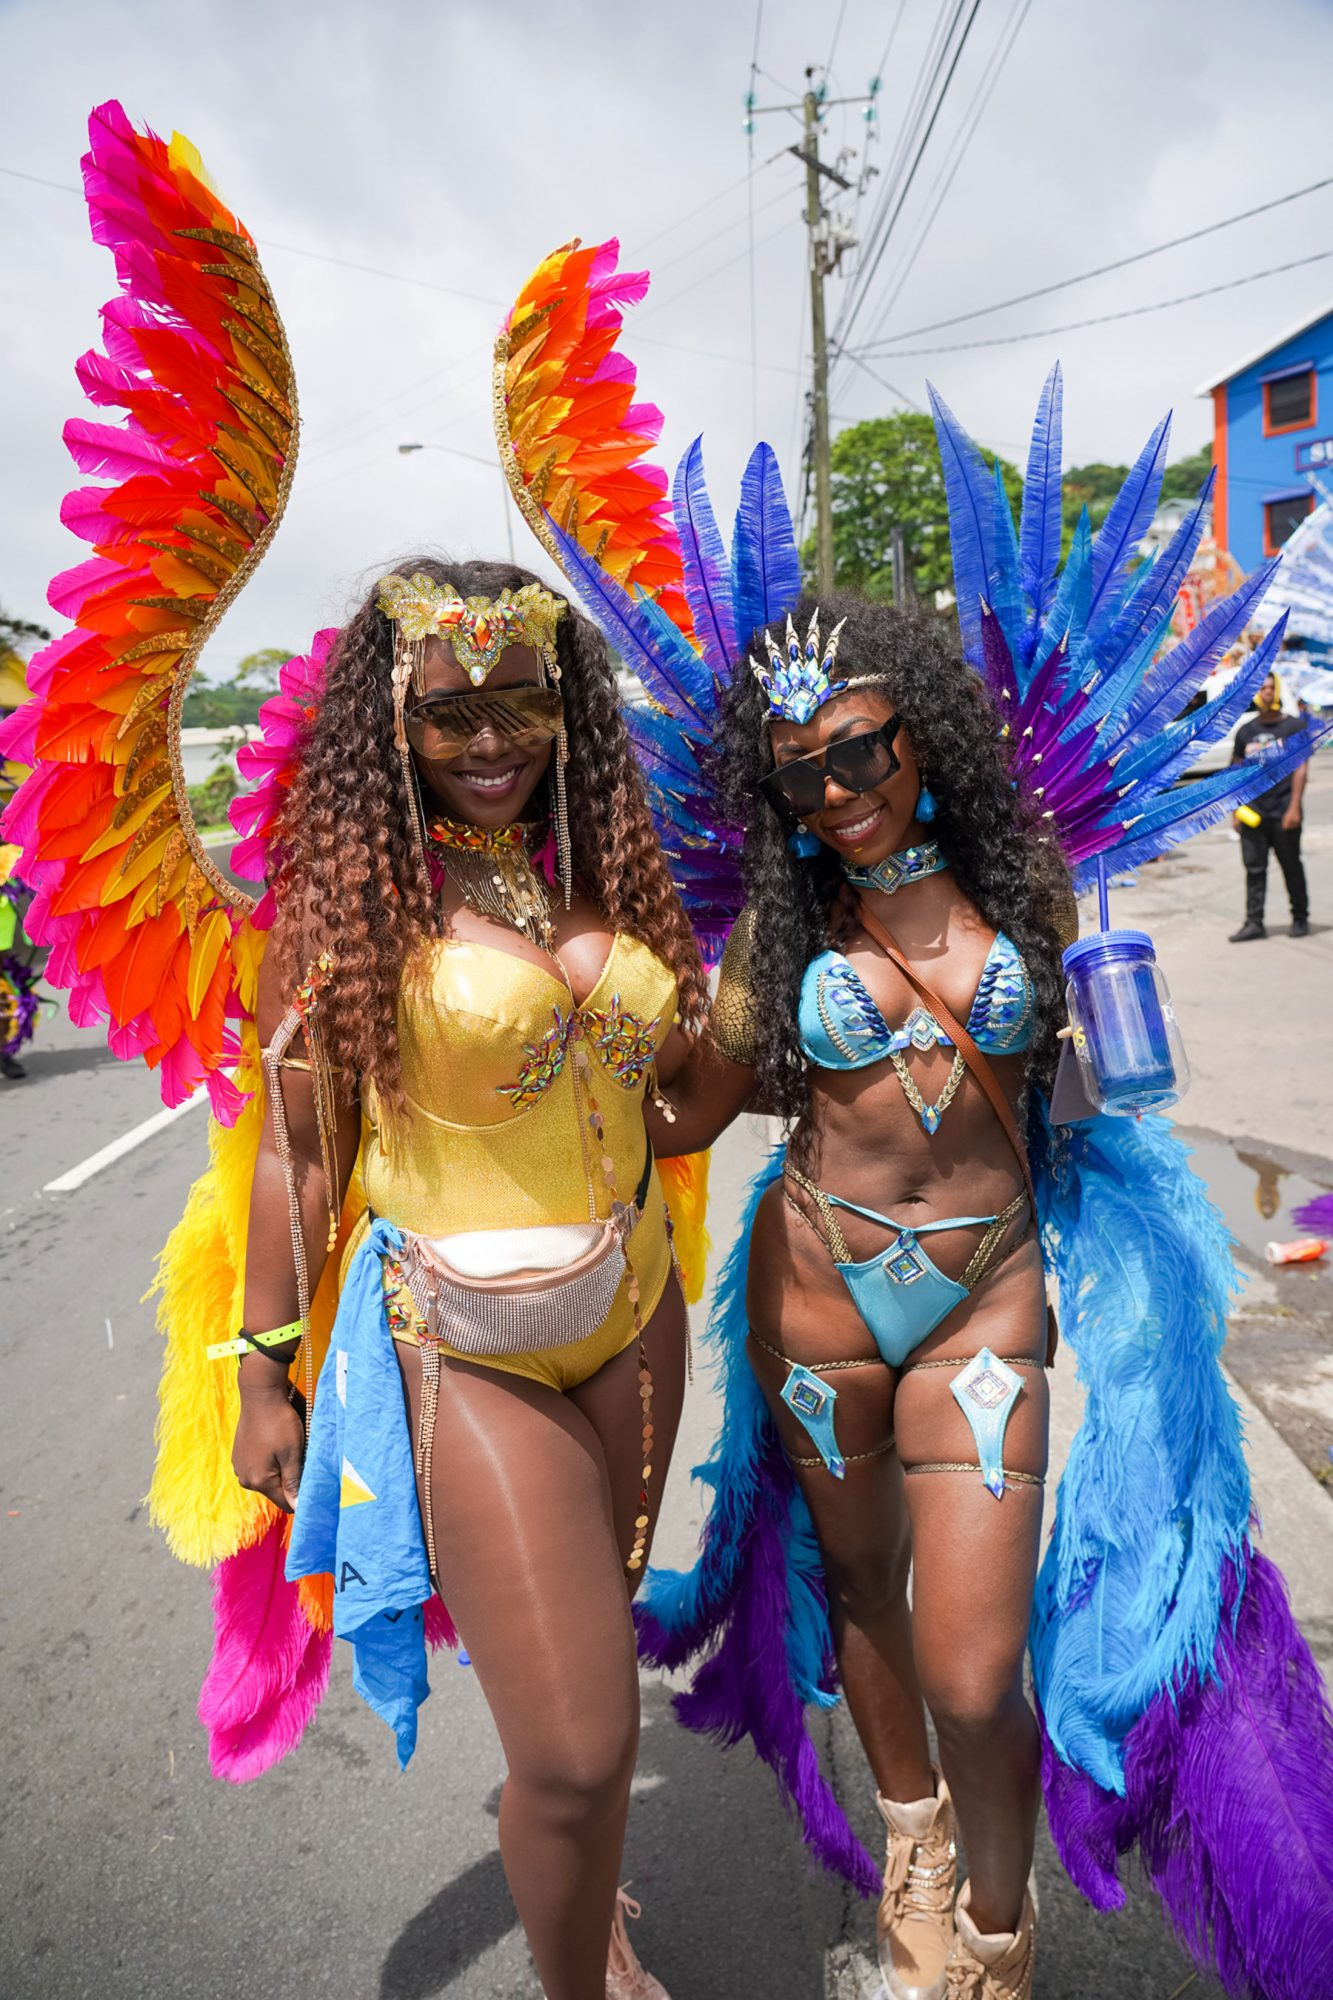 Women dressed in feathers for carnival